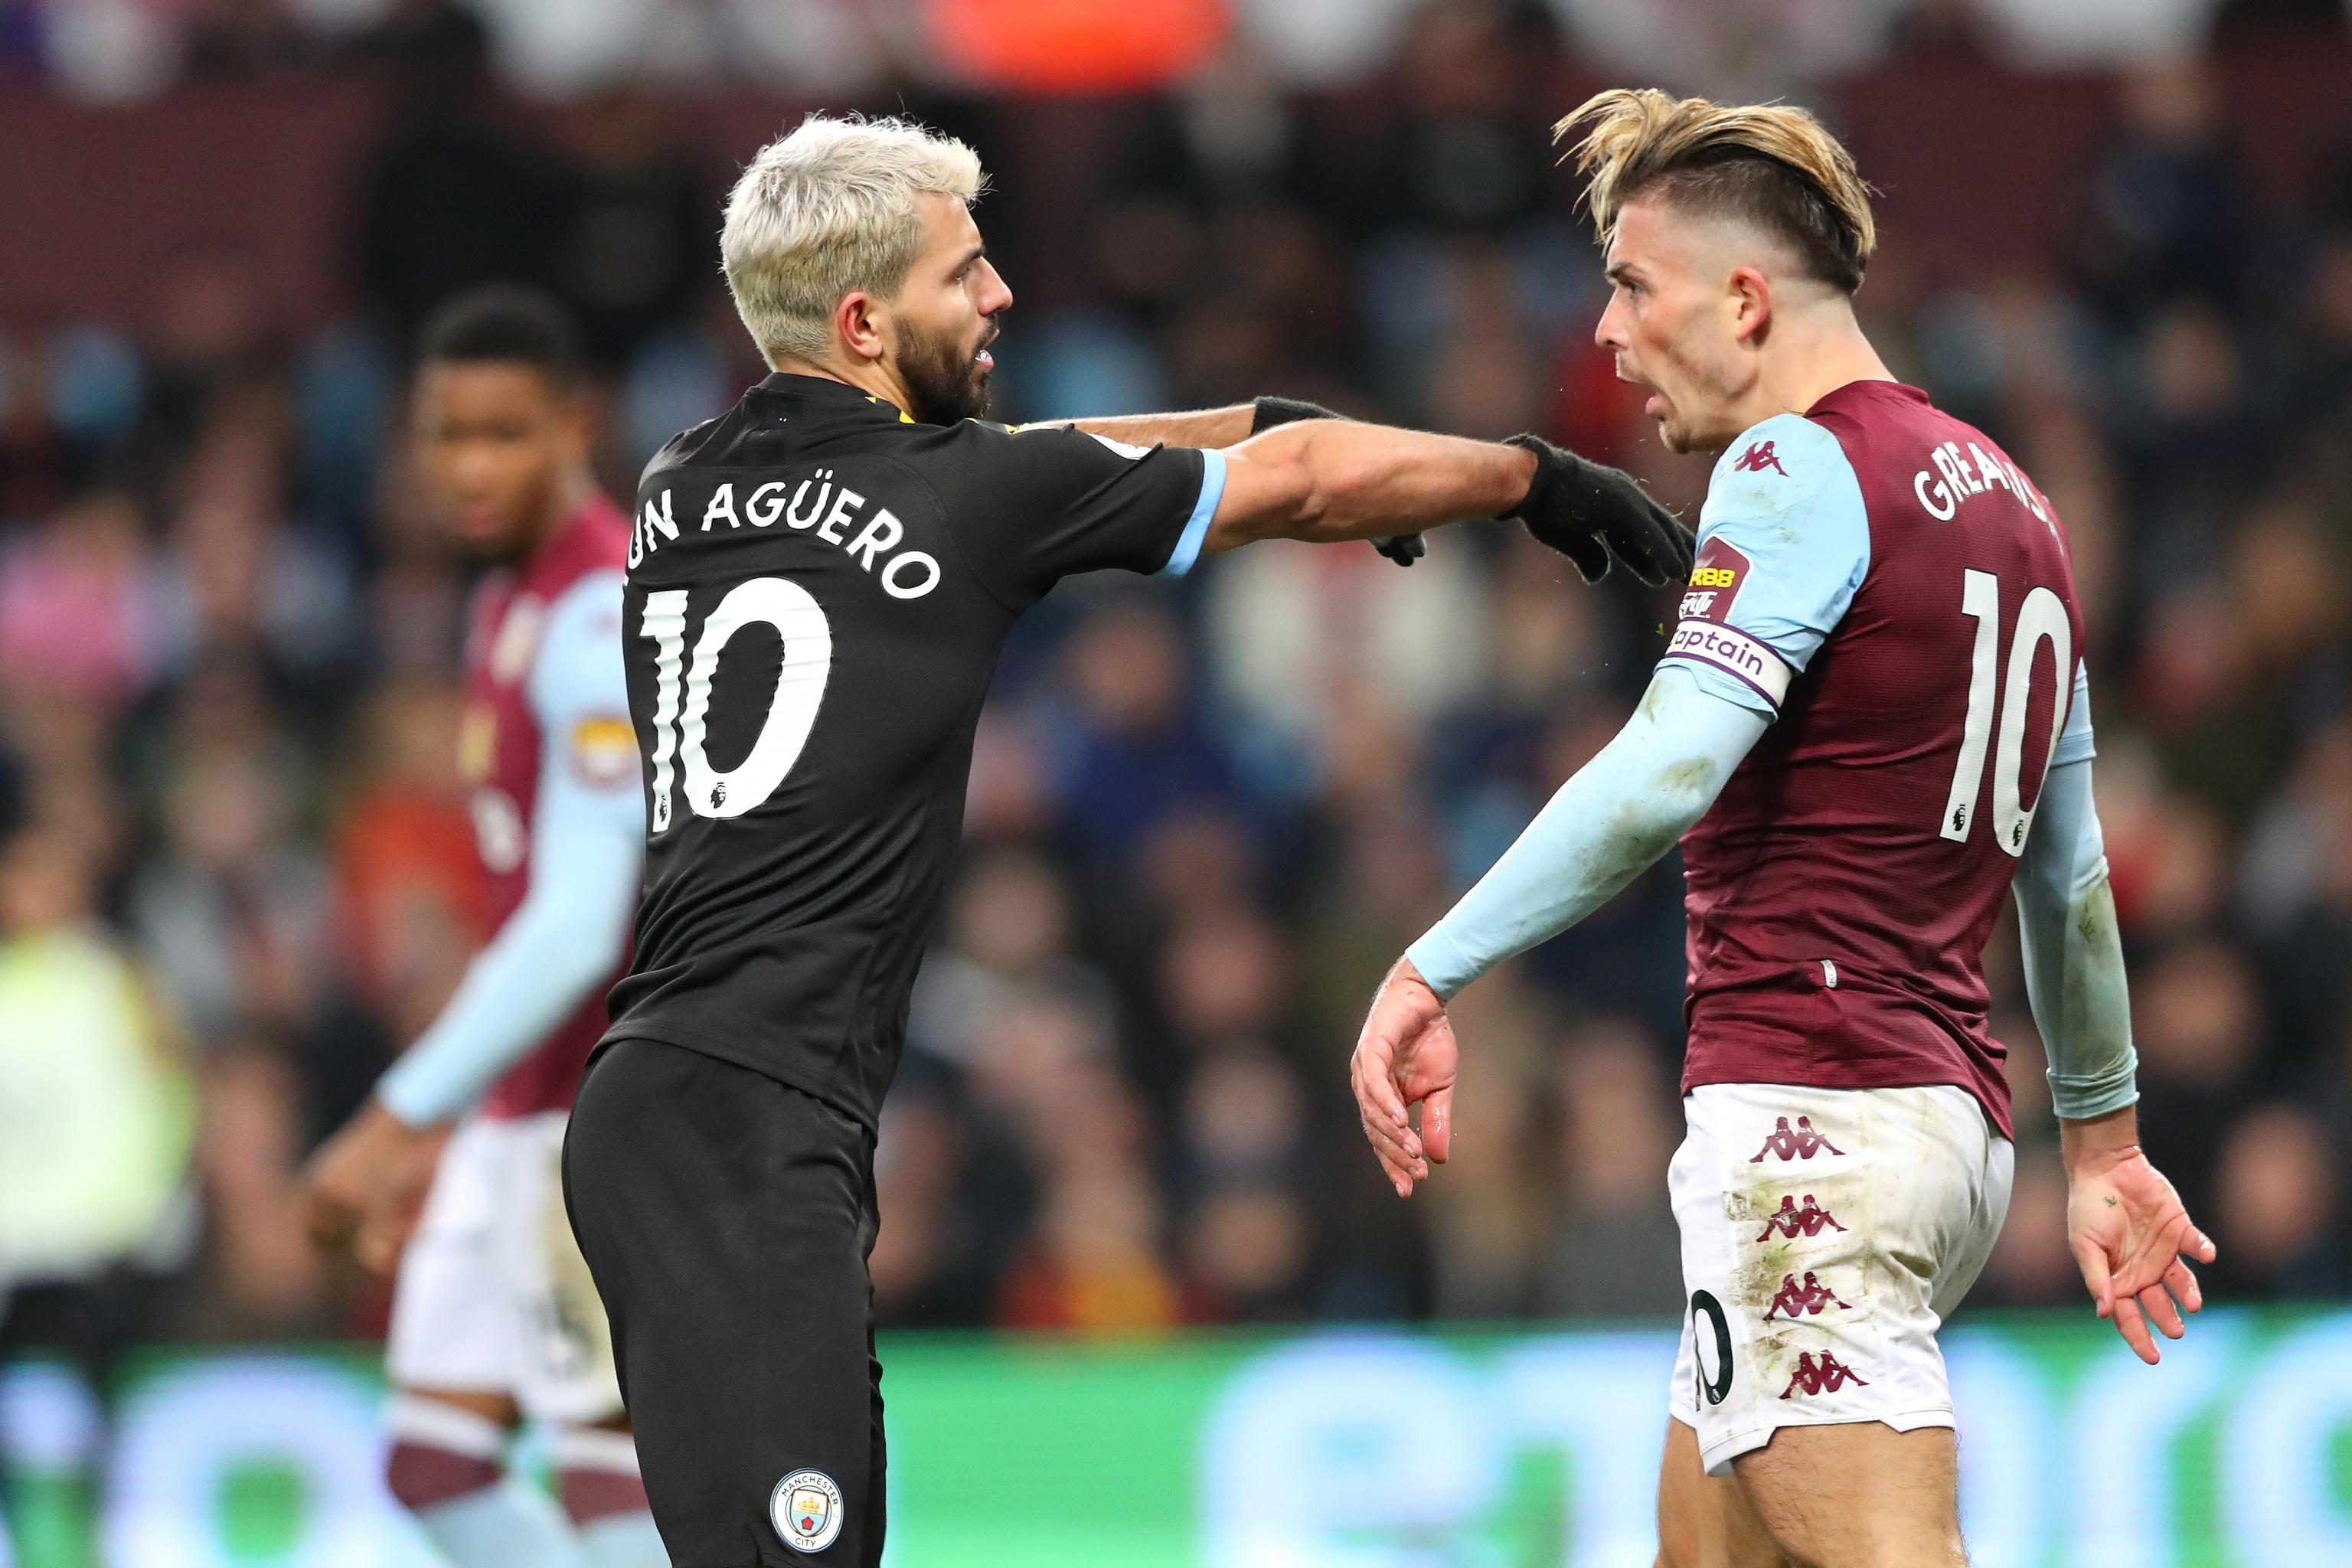 Aston villa man city betting preview nfl betting tips against the spread